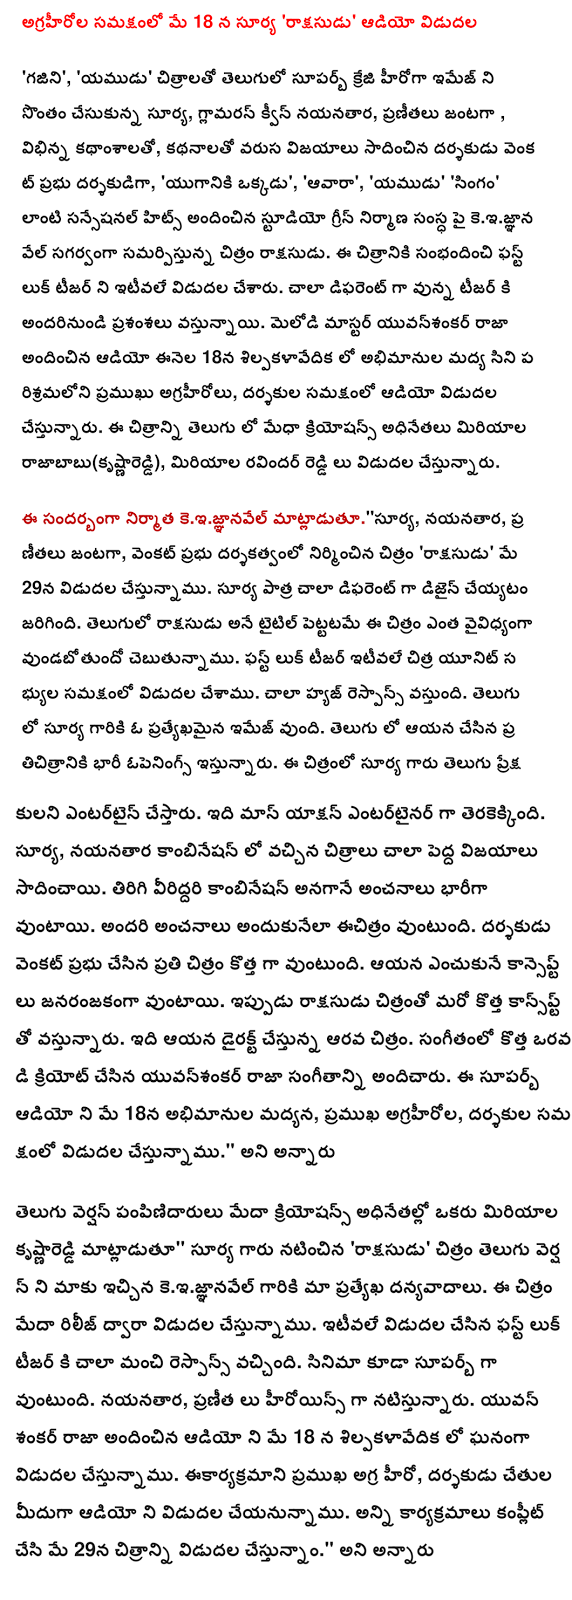 """On May 18 in the presence of agrahirola Sun 'monster' audio release  'Ghajini', 'Yama' Krazy superb films in English, which is owned by the sun's image, glamorous Queen sick, Pranitha opposite, different themes, director Venkat Prabhu the director did a series of articles, 'the age of man', 'Awara', 'Yama' ' singam 'sansesanal hits such as provided by Studio Green construction company, sponsored the monster on the keijnanavel. This is related to the first look teaser of the film has been released recently. The teaser is very different from the andarinundi are appreciated. Melody Master Audio yuvansankar Raja on October 18 between the film industry, leading the crowd in silpakalavedika agrahirolu, being released in the presence of directors. Peppermint kriyosans intellectual leaders in this picture rajababu (krsnareddi), Peppermint ravindar Reddy's release.  Speaking on the occasion, producer keijnanavel. """"Sun, sick, Pranitha starrer, directed by Venkat Prabhu movie 'Monster' will be released on May 29. Ceyyatam the sun has been designed as a very different character. The film is in English to the title of being the monster that is different vundabotundo mean. The first look teaser Chitra has recently been released in the presence of members of the unit. Most hyaj comes in response. garu in the sun is a pratyekhamaina image. praticitraniki large openings are made in Telugu. The film is Surya Rao, Telugu audience to ask. It was mass action entertainer made. The sun, sick of the images in combination with a very big hits. Back when a combination of the two estimates is huge. Everyone has expectations to receive the film. The director Venkat Prabhu is new in every film. He is popular to pick out the concept. Now, a new image of the monster kanspt come up with. It is the sixth film that he directed. Kriyot new trend in the music of the King of yuvansankar providing the music. This superb audio between fans on May 18, leading agrahirola, will be released in the presence o"""